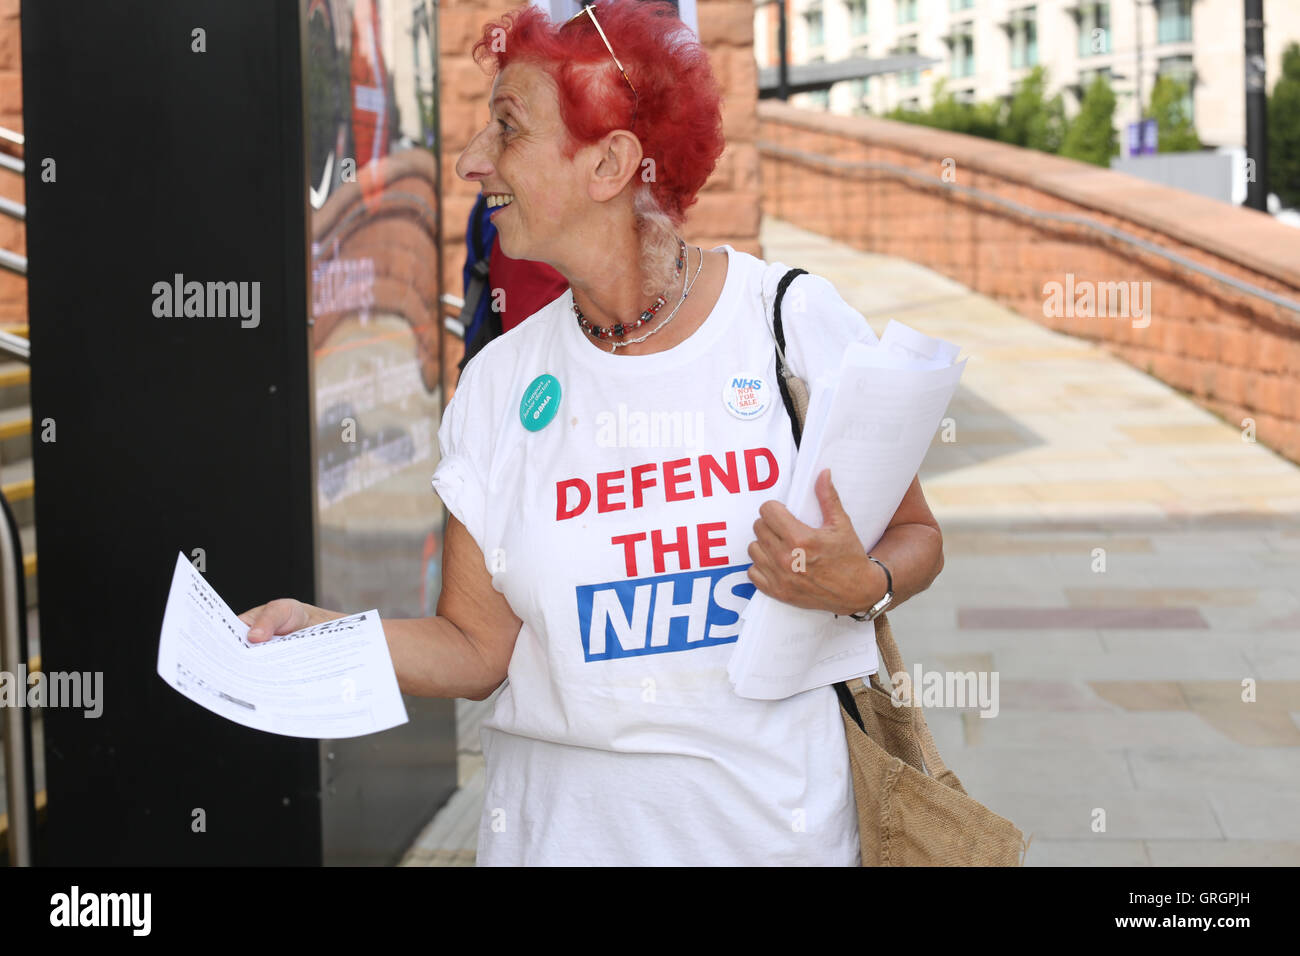 Manchester, UK. 7th September, 2016. A women wearing a shirt with the words 'Defend The NHS' printed on - Stock Image